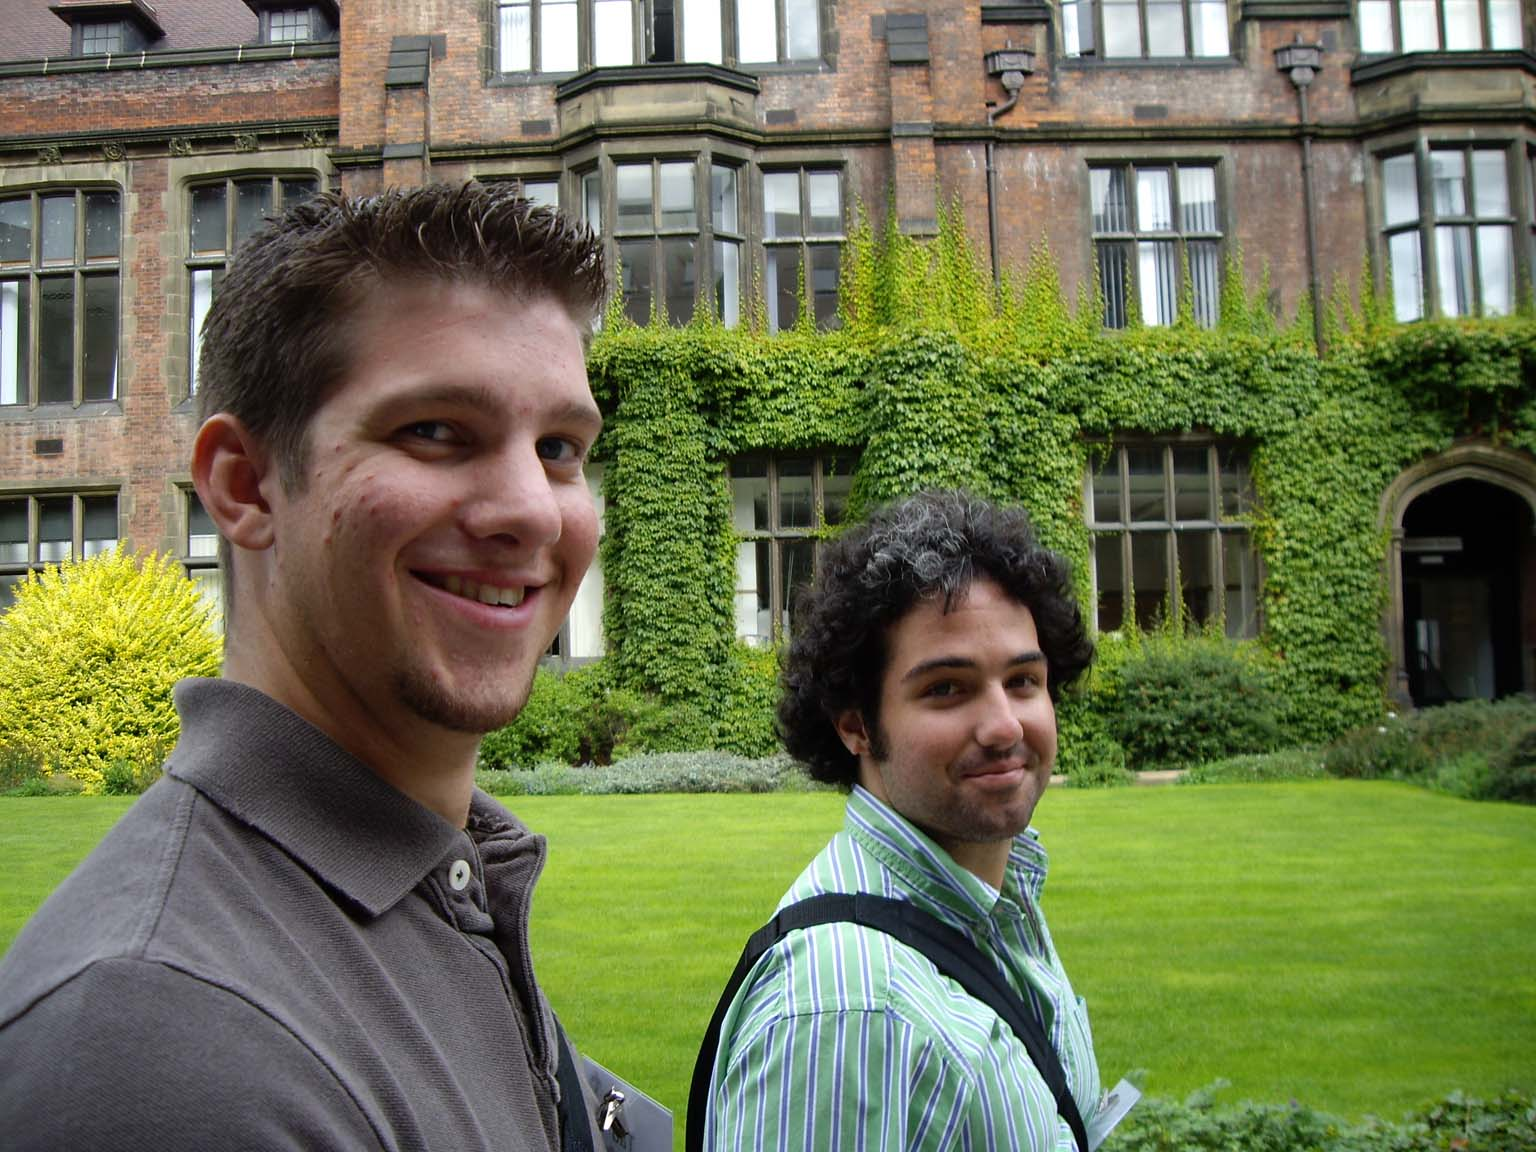 Tad and Zac at University of Newcastle